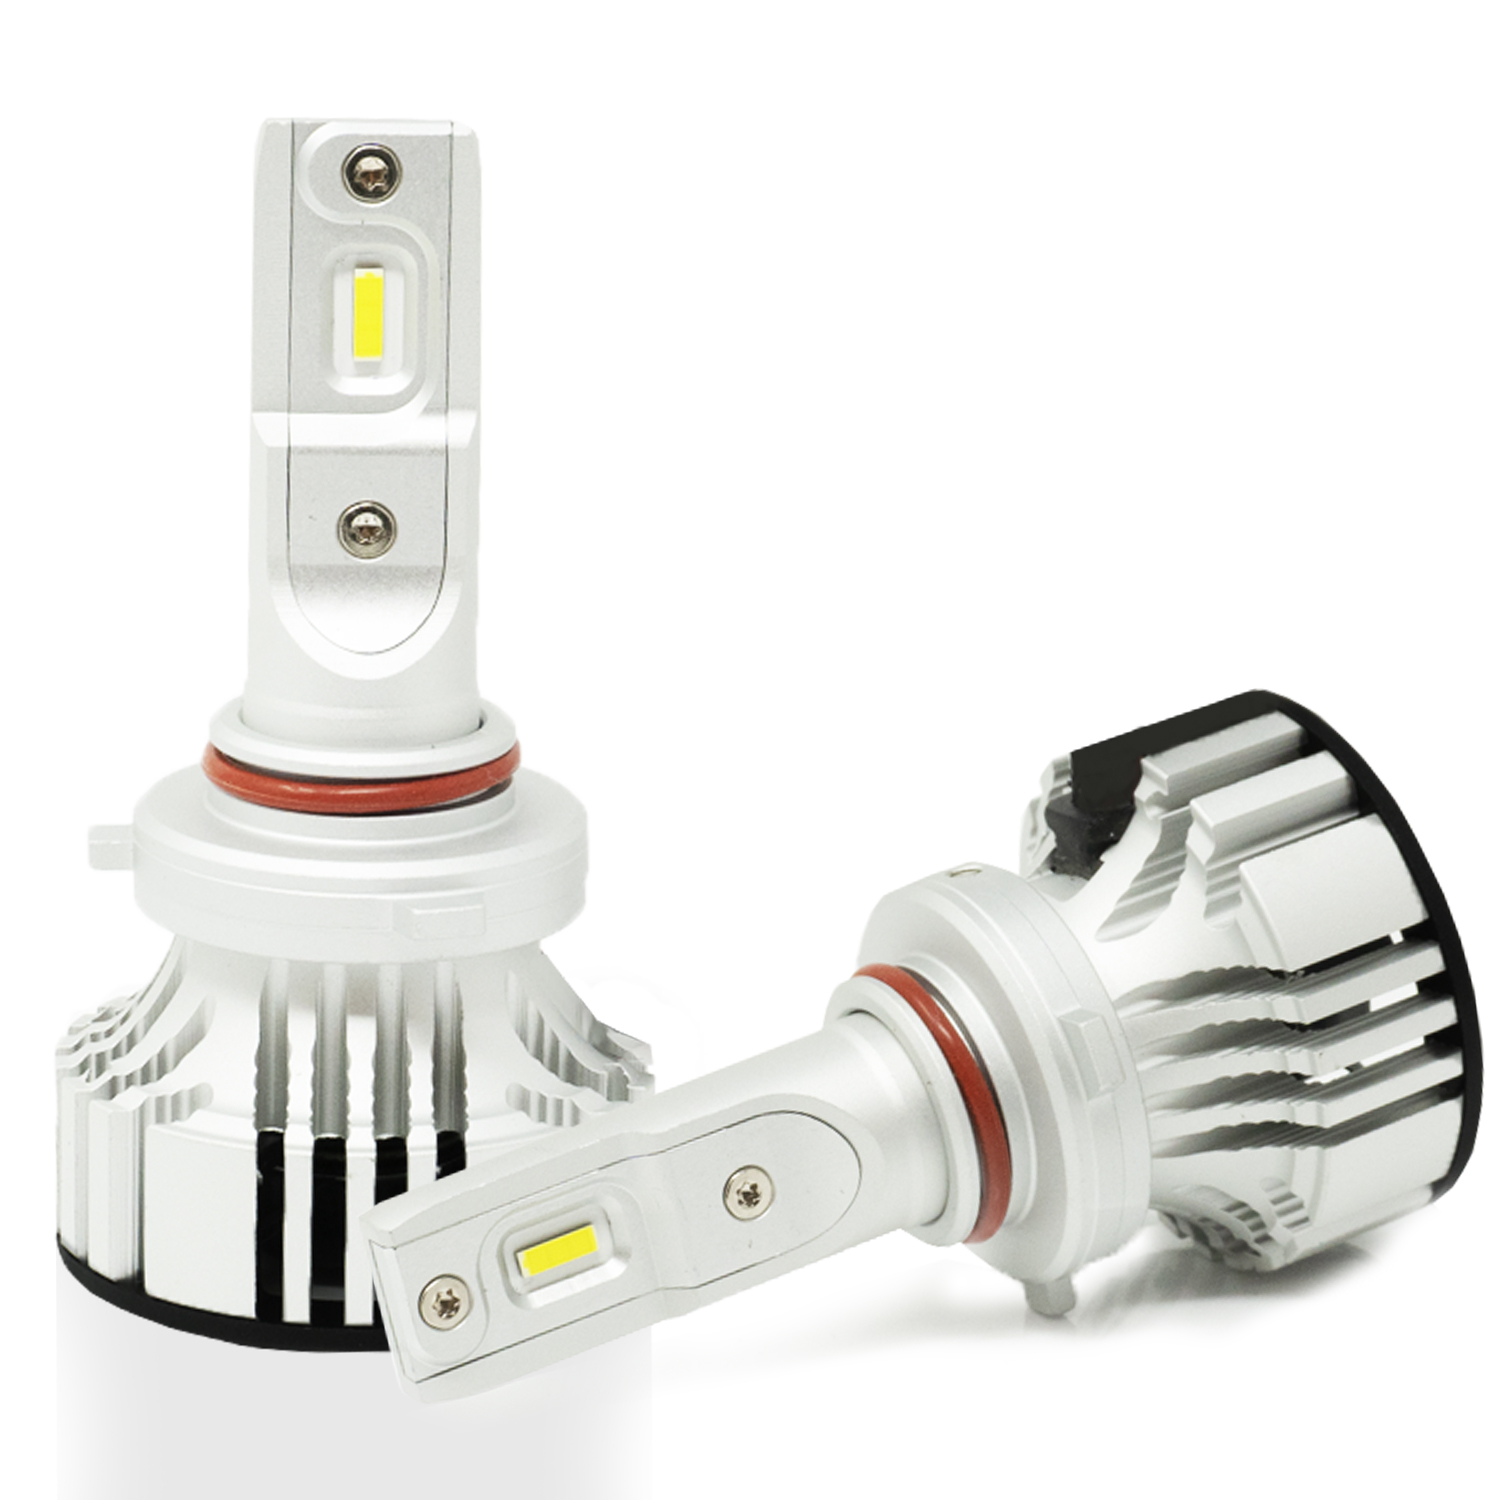 Best Ram 3500 LED High Beam Headlight Bulb, 6K White/Yellow/Red/Blue